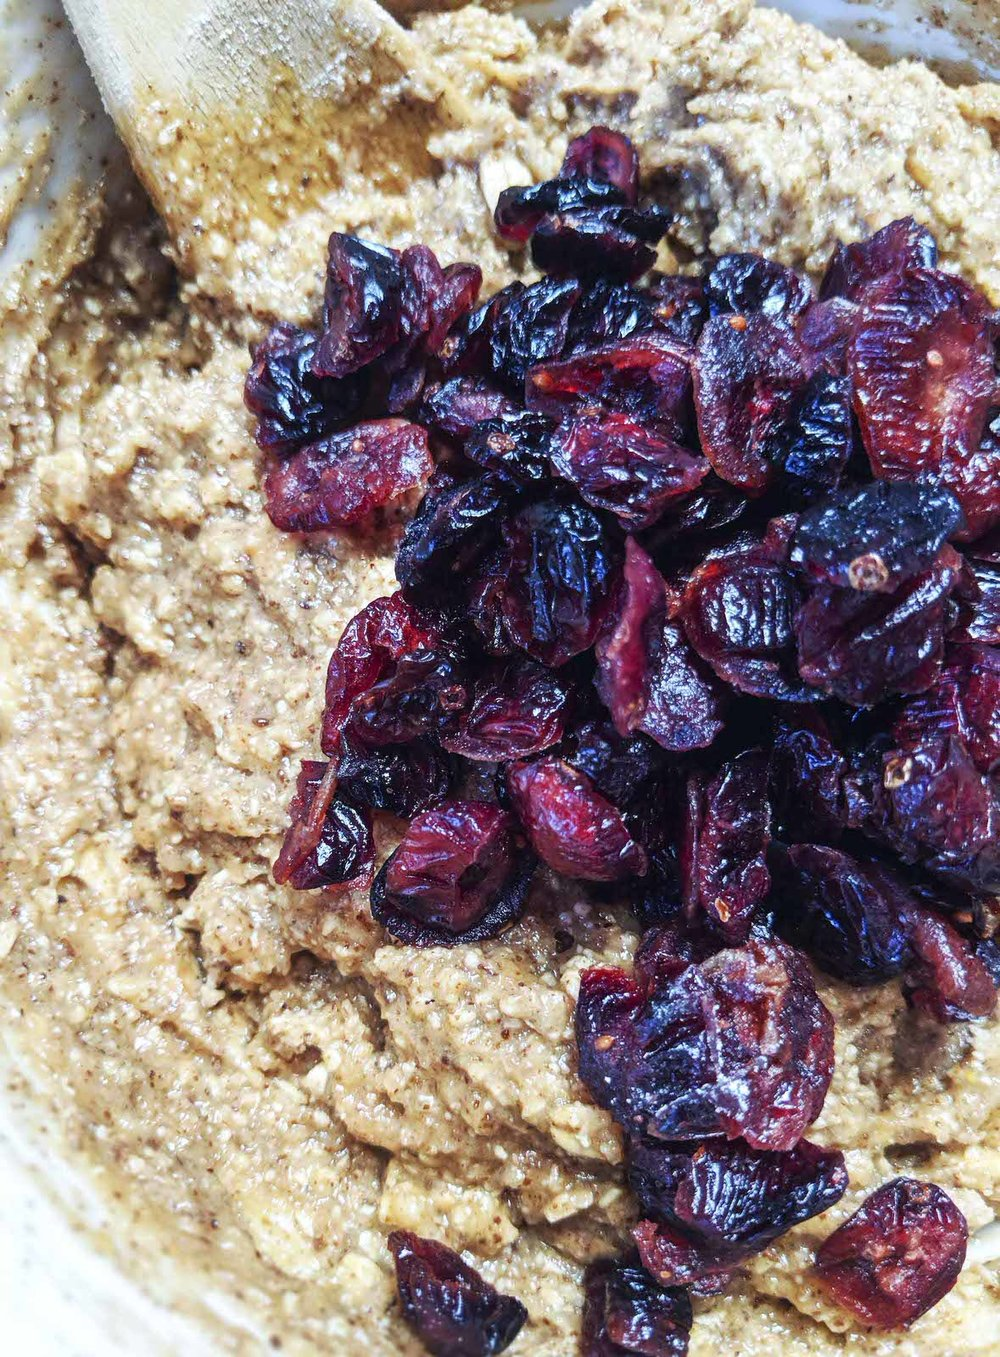 cranberry-oatmeal-cookie-dough-vegan-gluten-free.JPG